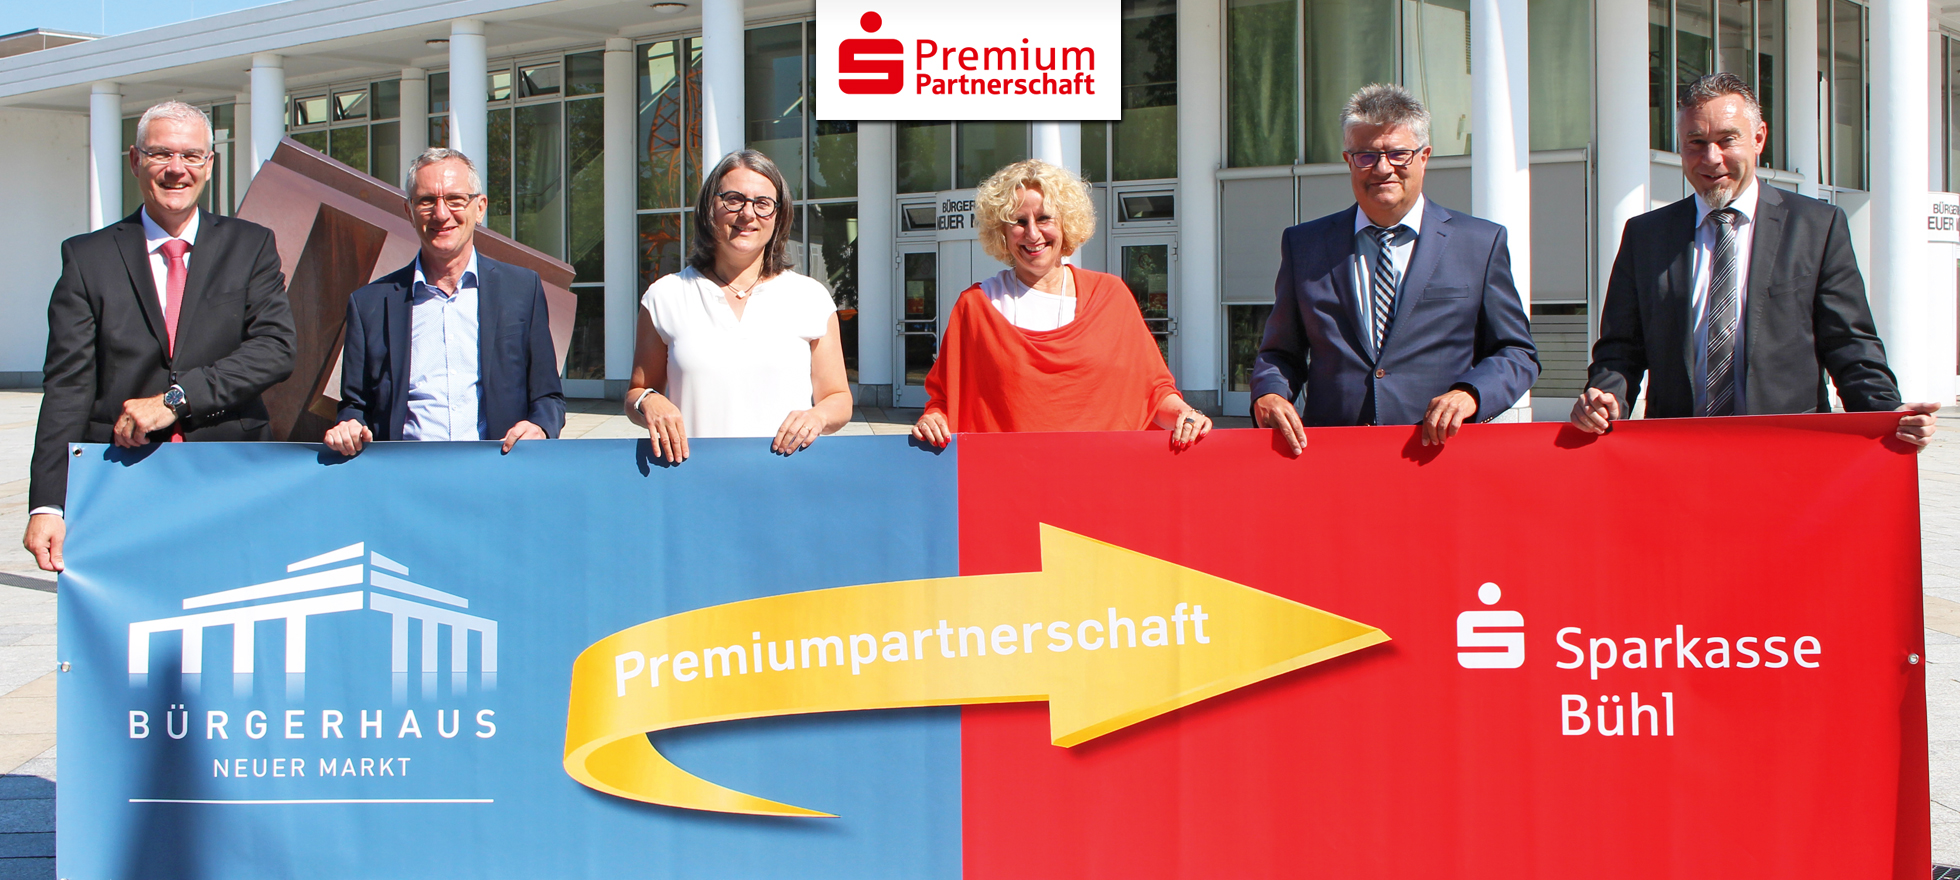 Premiumpartnerschaft